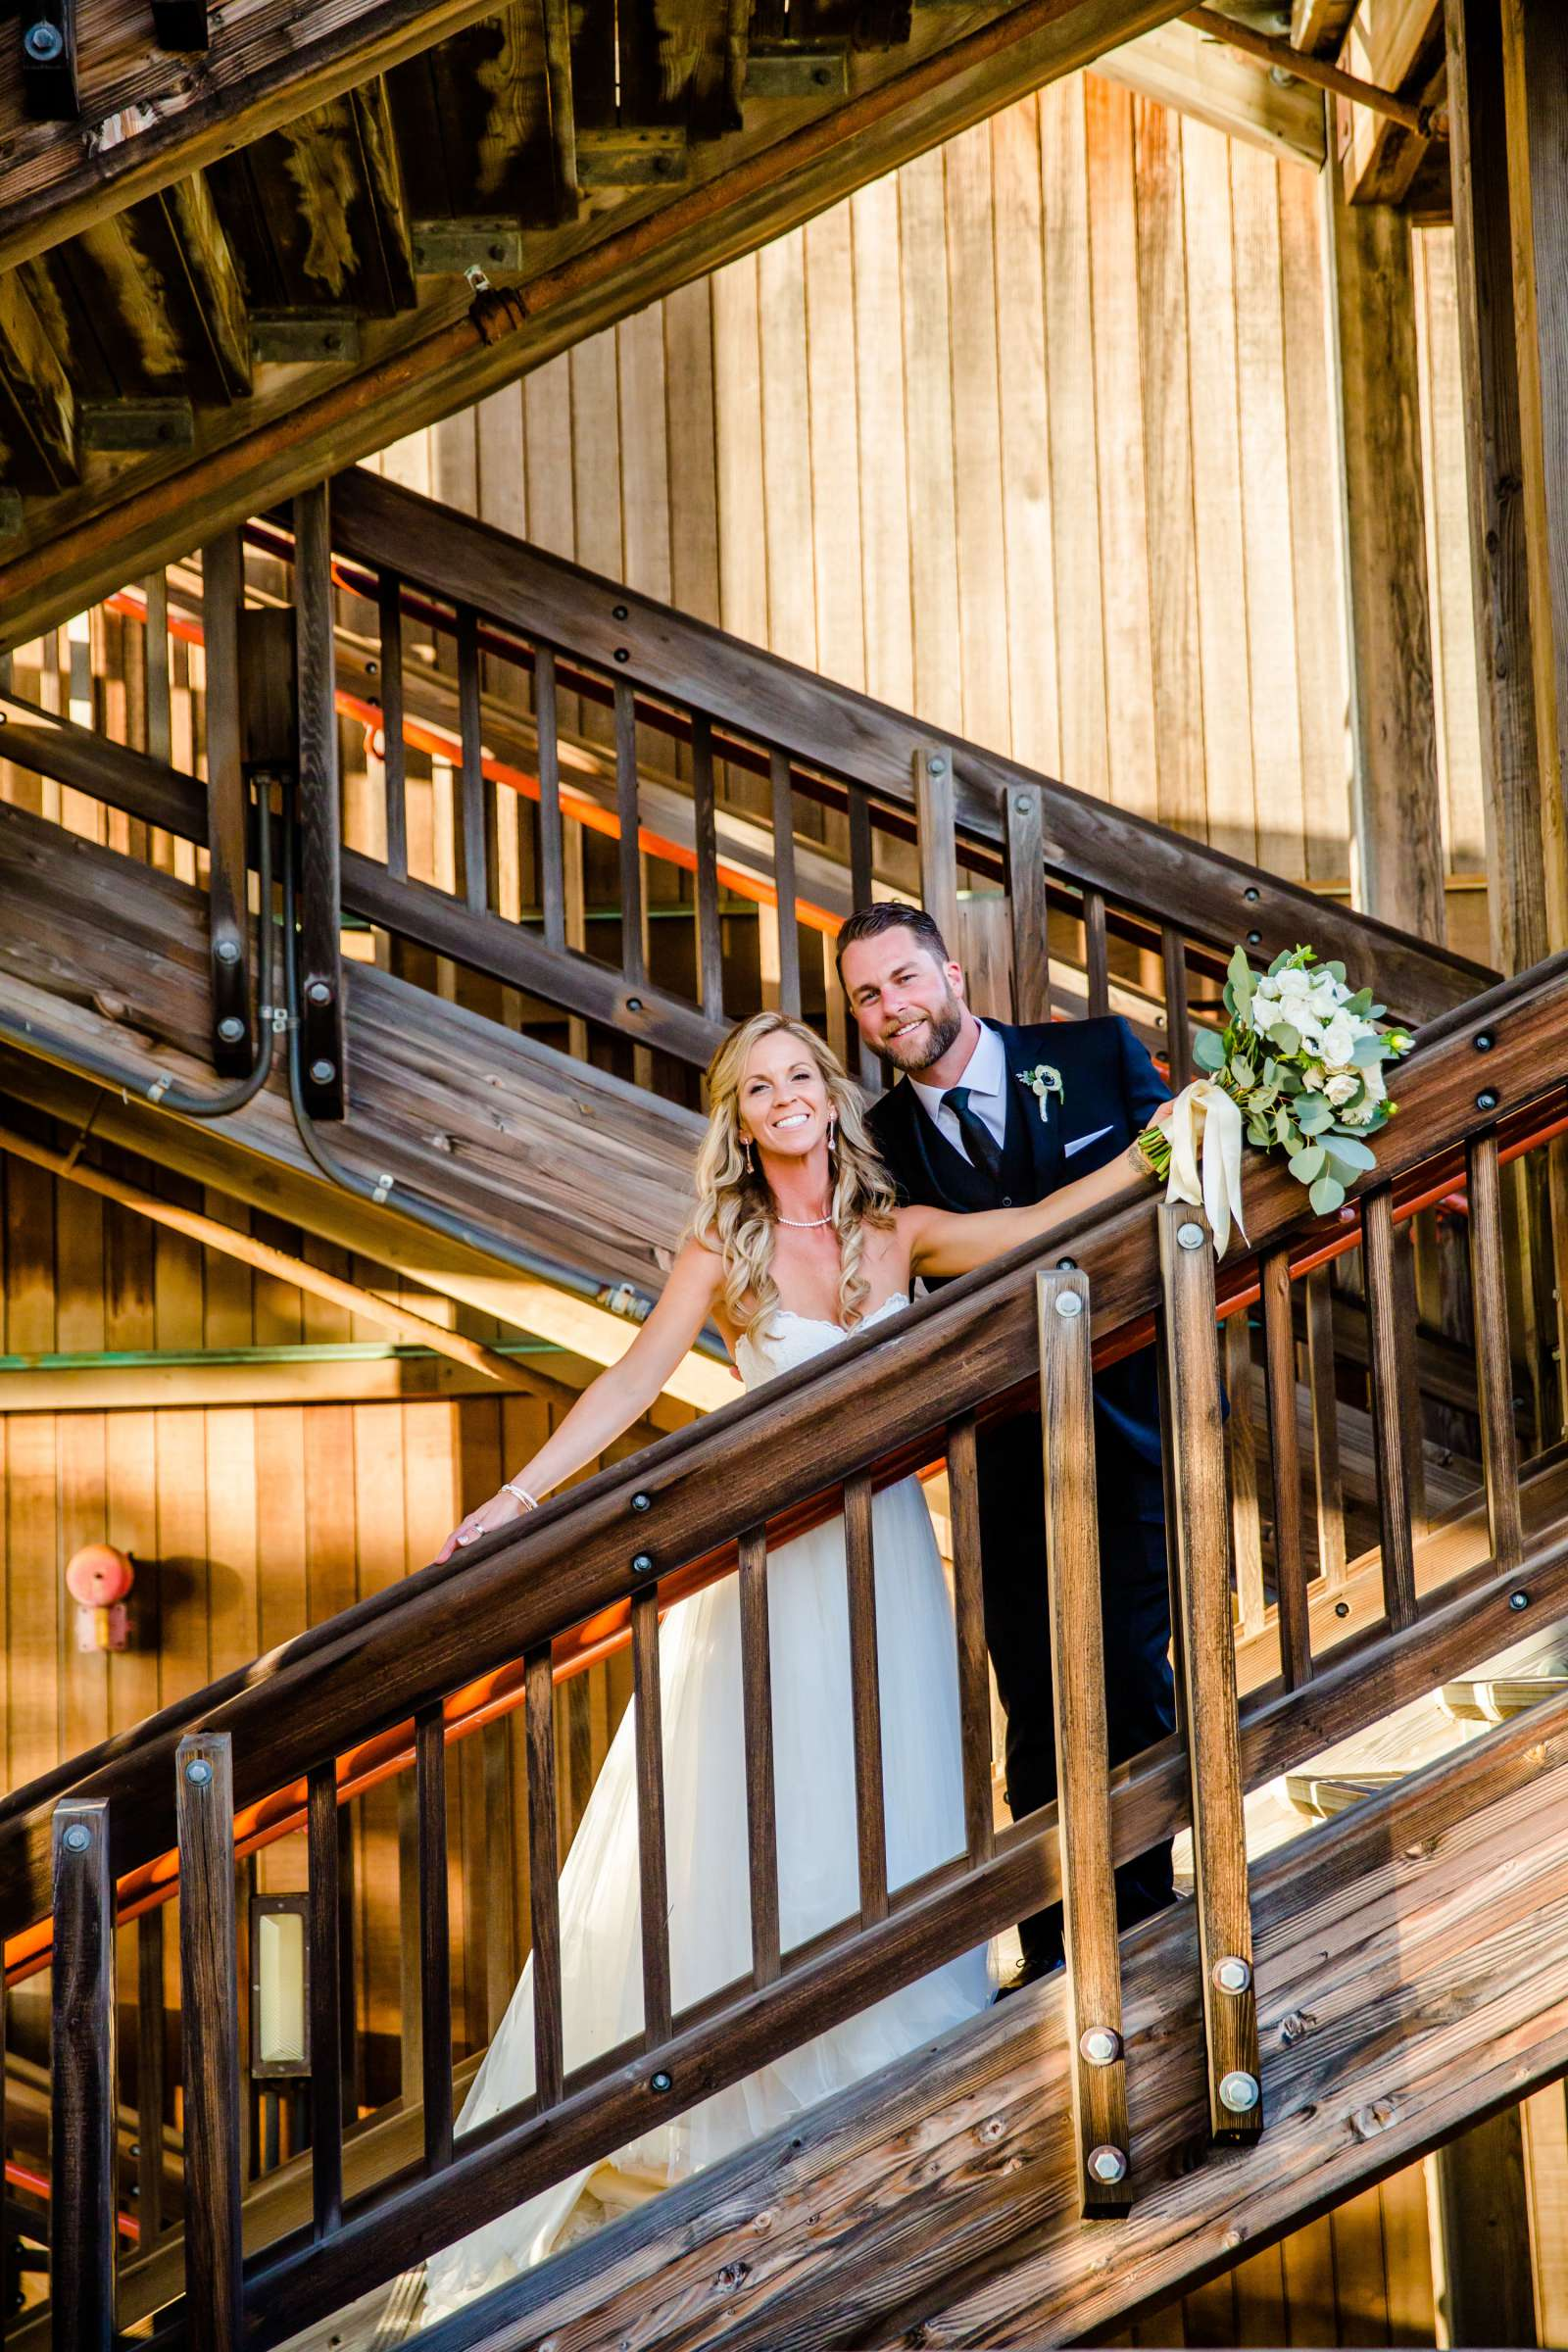 Martin Johnson House Wedding coordinated by Elements of Style, Anna and Travis Wedding Photo #315669 by True Photography